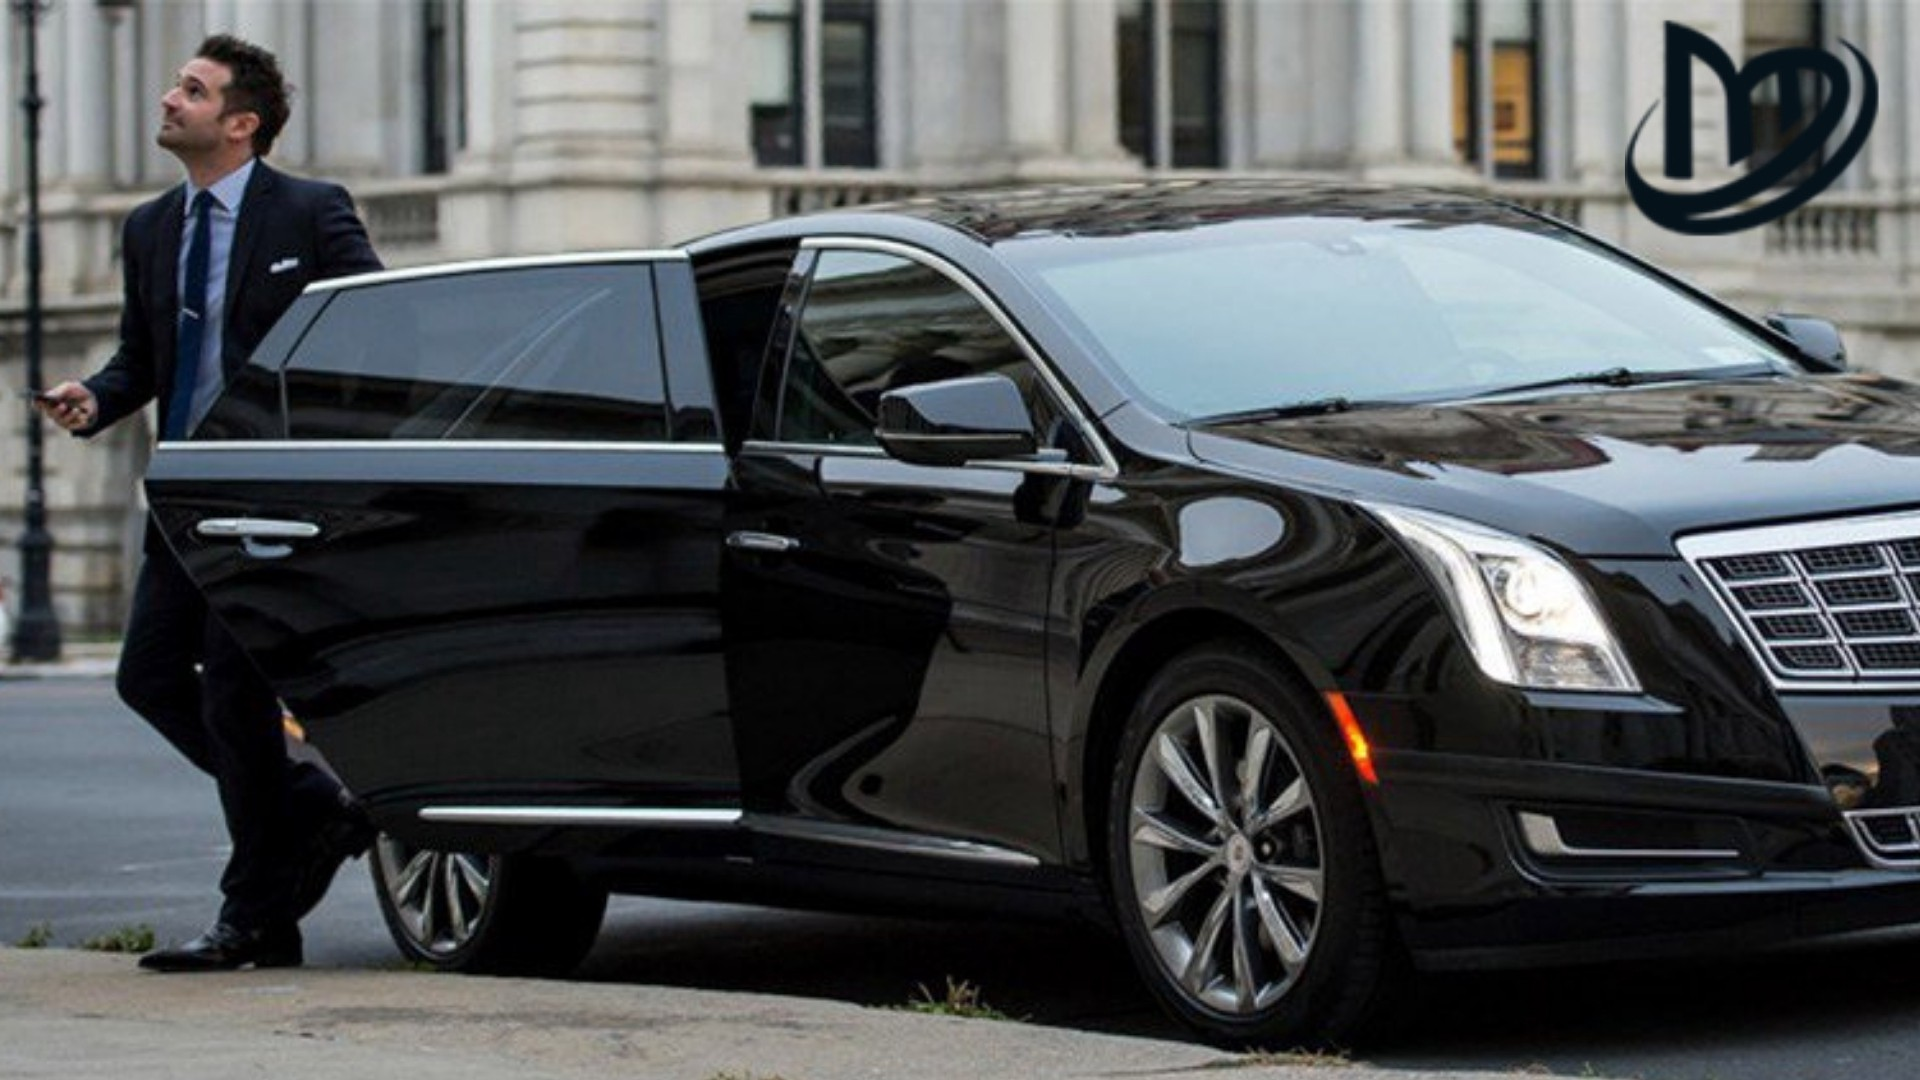 Luxury Chauffeurs at Your Service